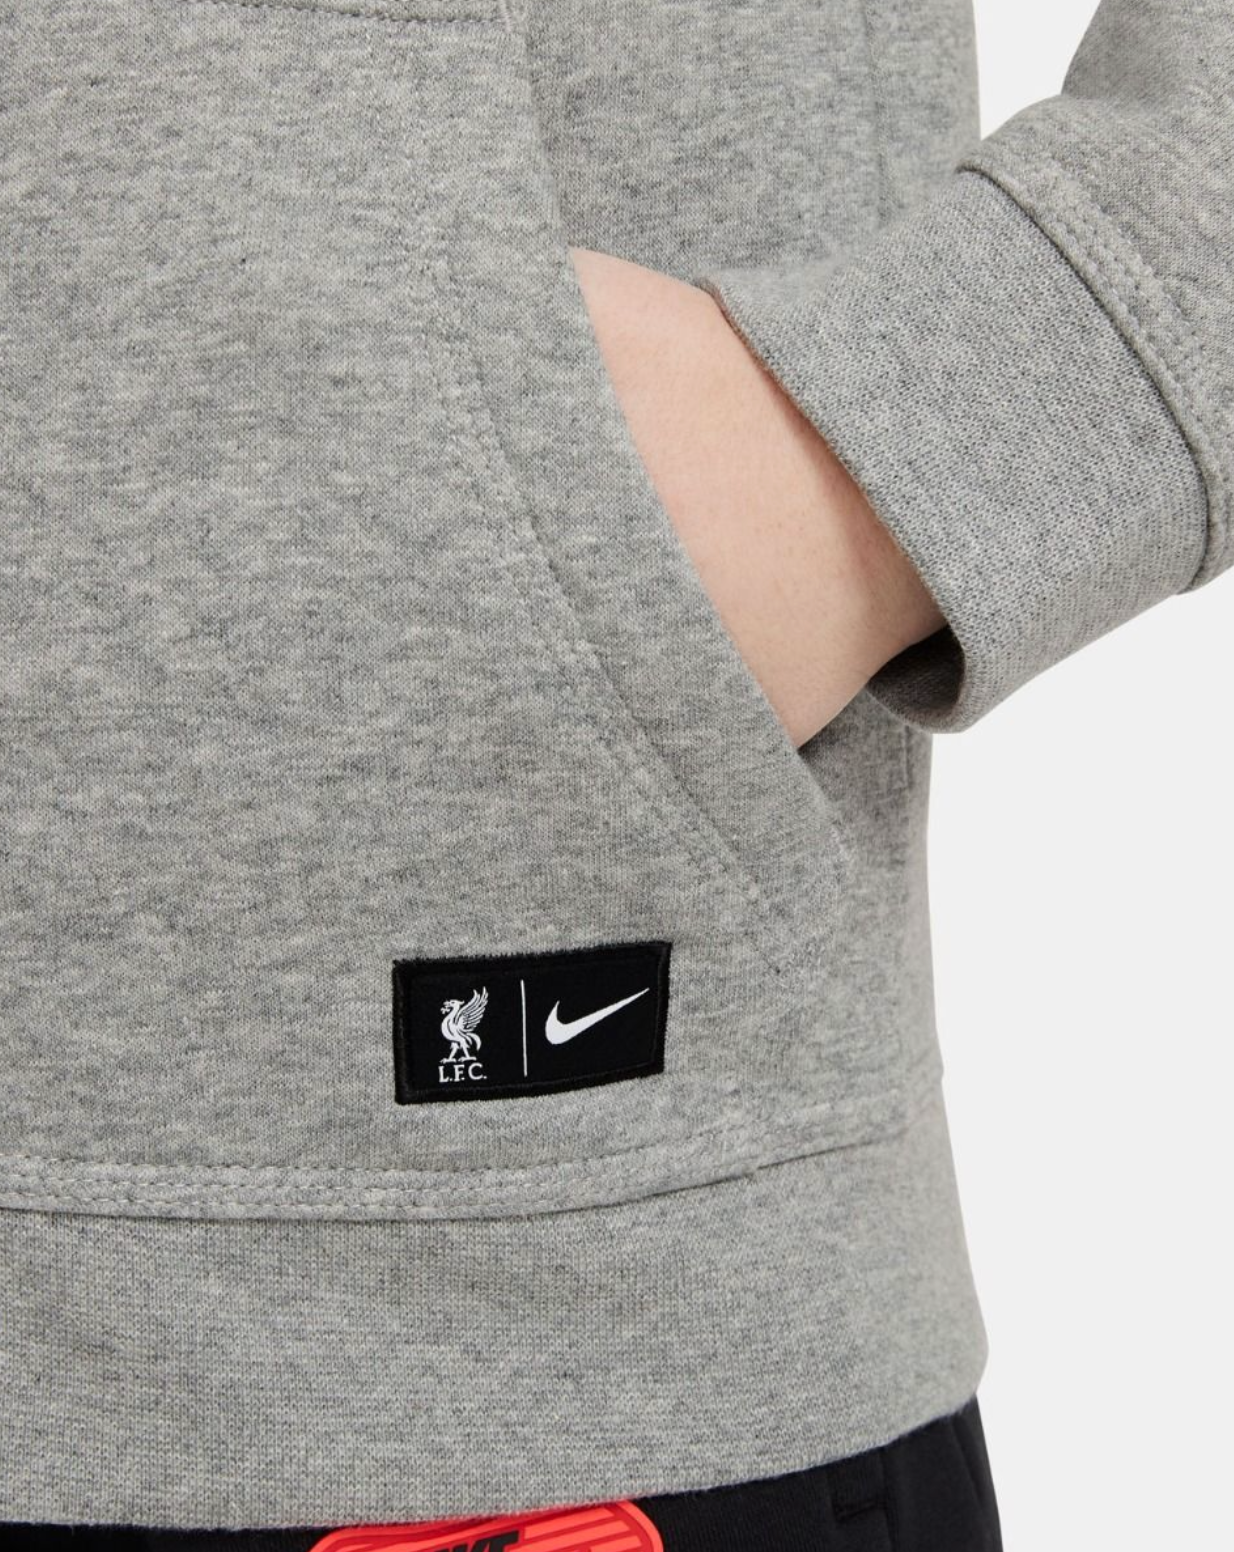 LFC Nike Air Max Junior Dark Grey Fleece Hoodie - Anfield Shop